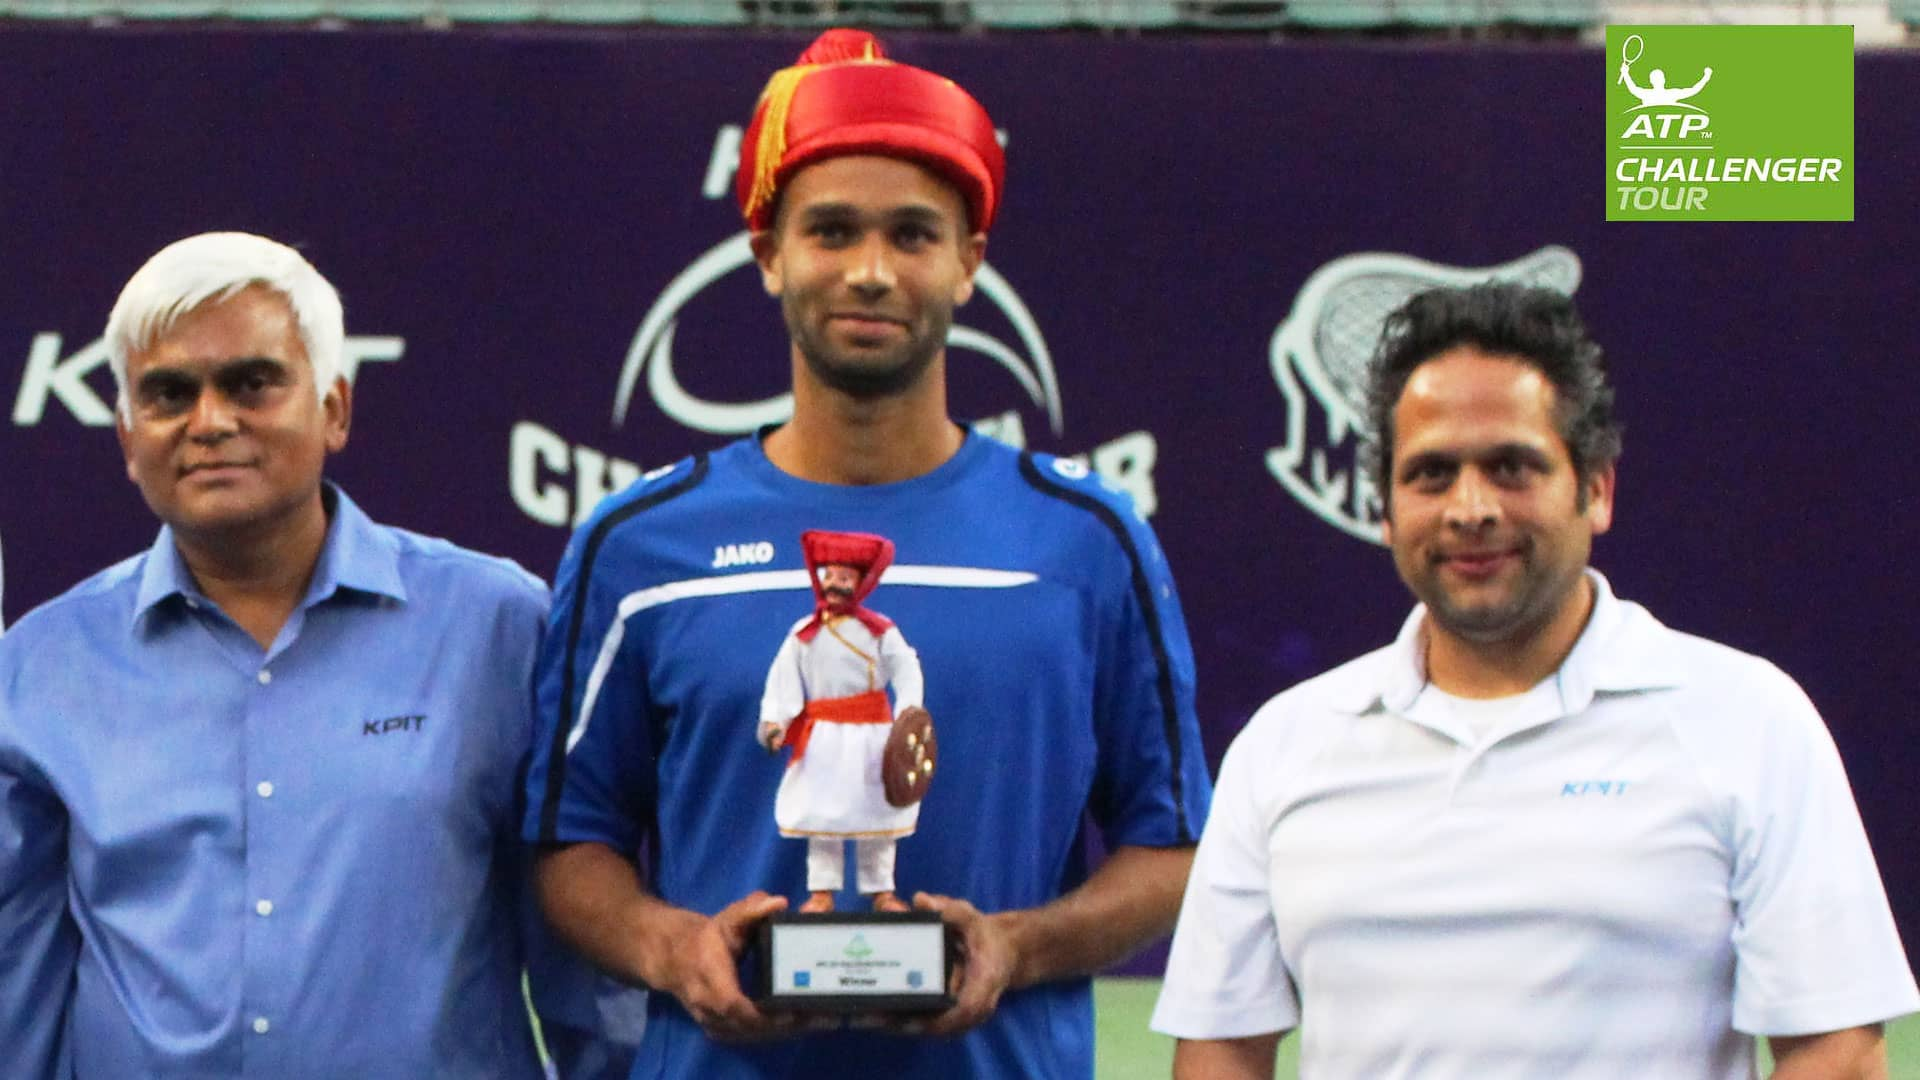 Sadio Doumbia captures his maiden ATP Challenger Tour title in Pune.